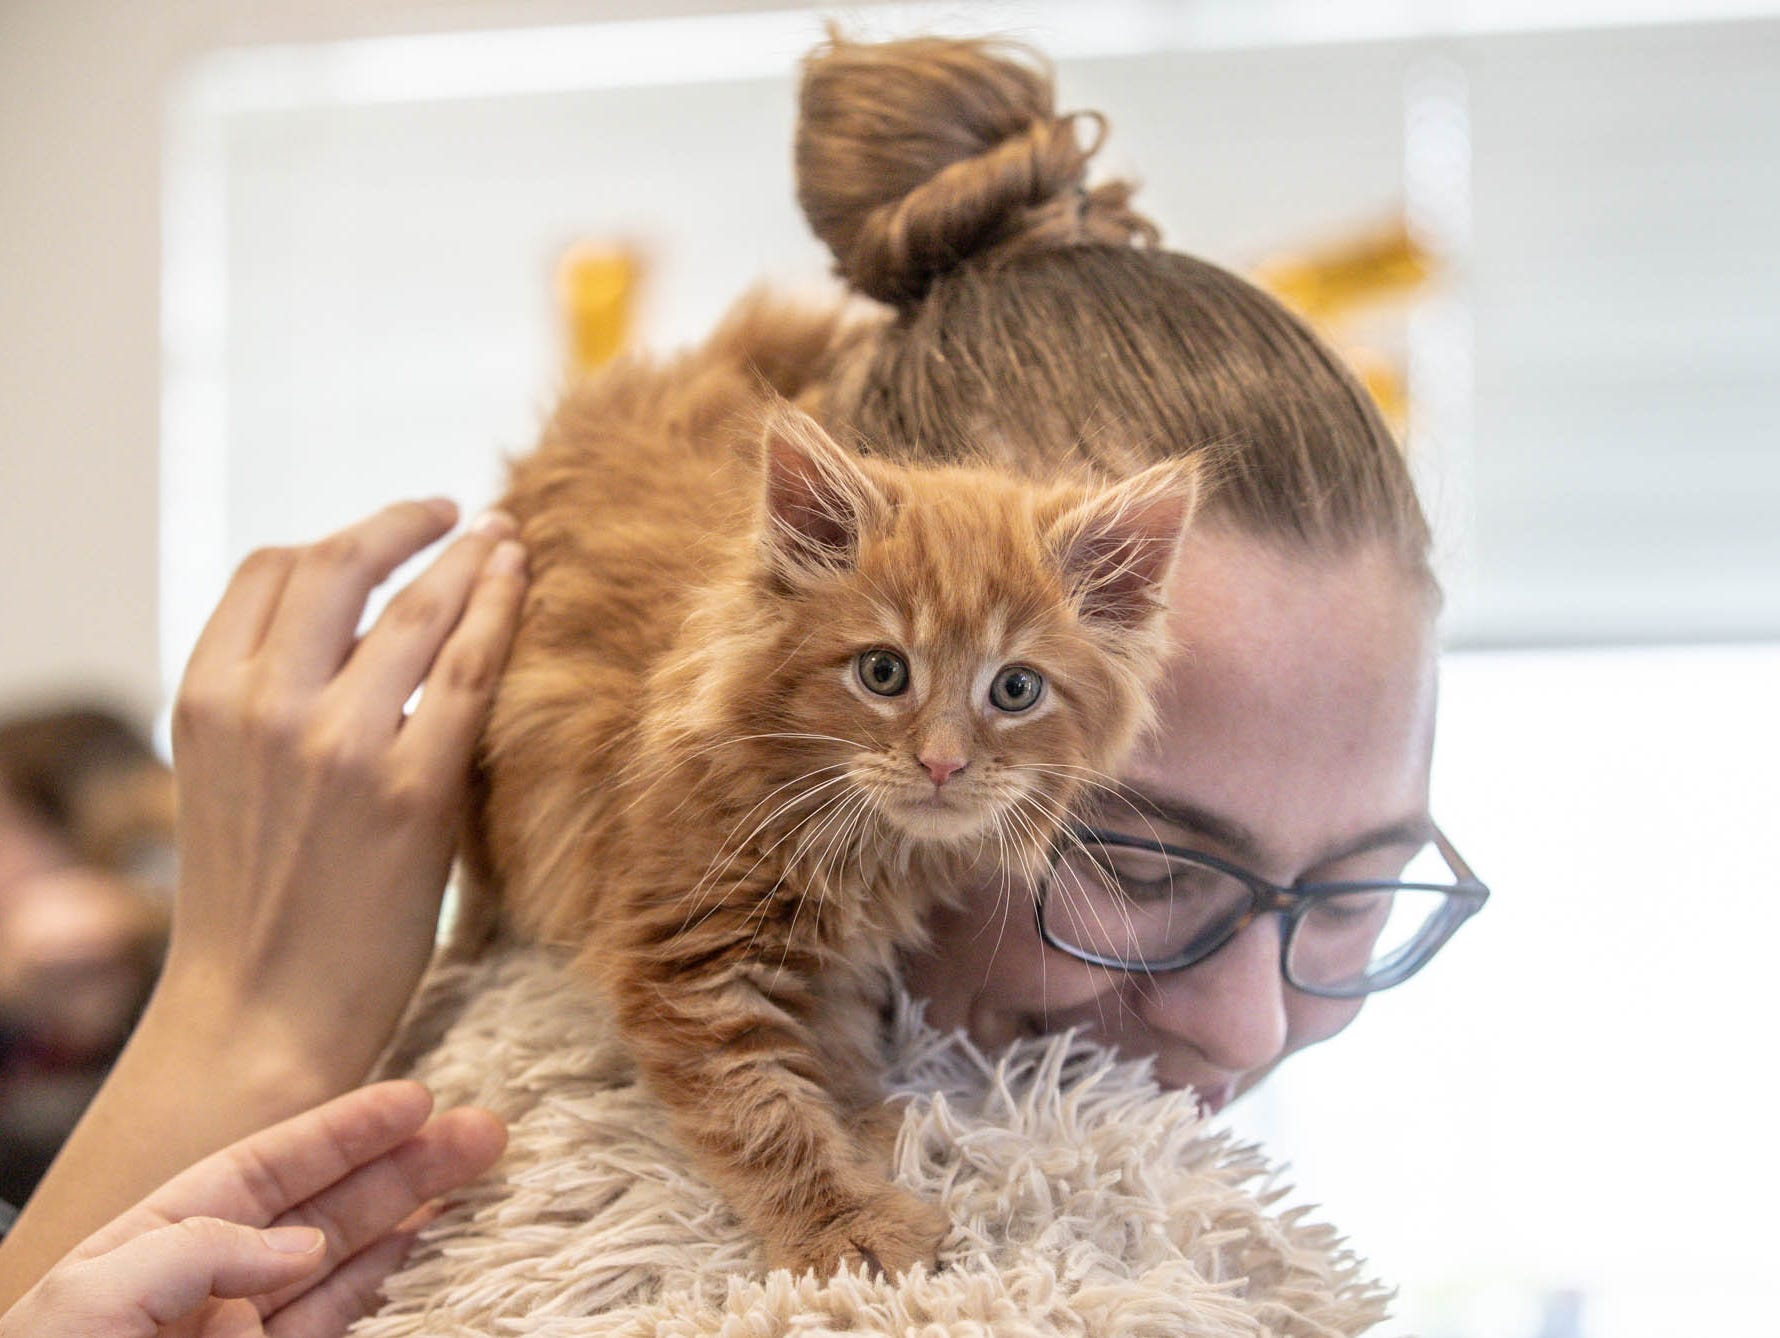 An orange kitten climbs Rhiannon Schilling at Indy Humane during their Puppy and Kitten Baby Shower on Sunday, March 10, 2019. The event educates families on Indy Humane's foster care program, as Fosters are needed in the spring during puppy and kitten season.